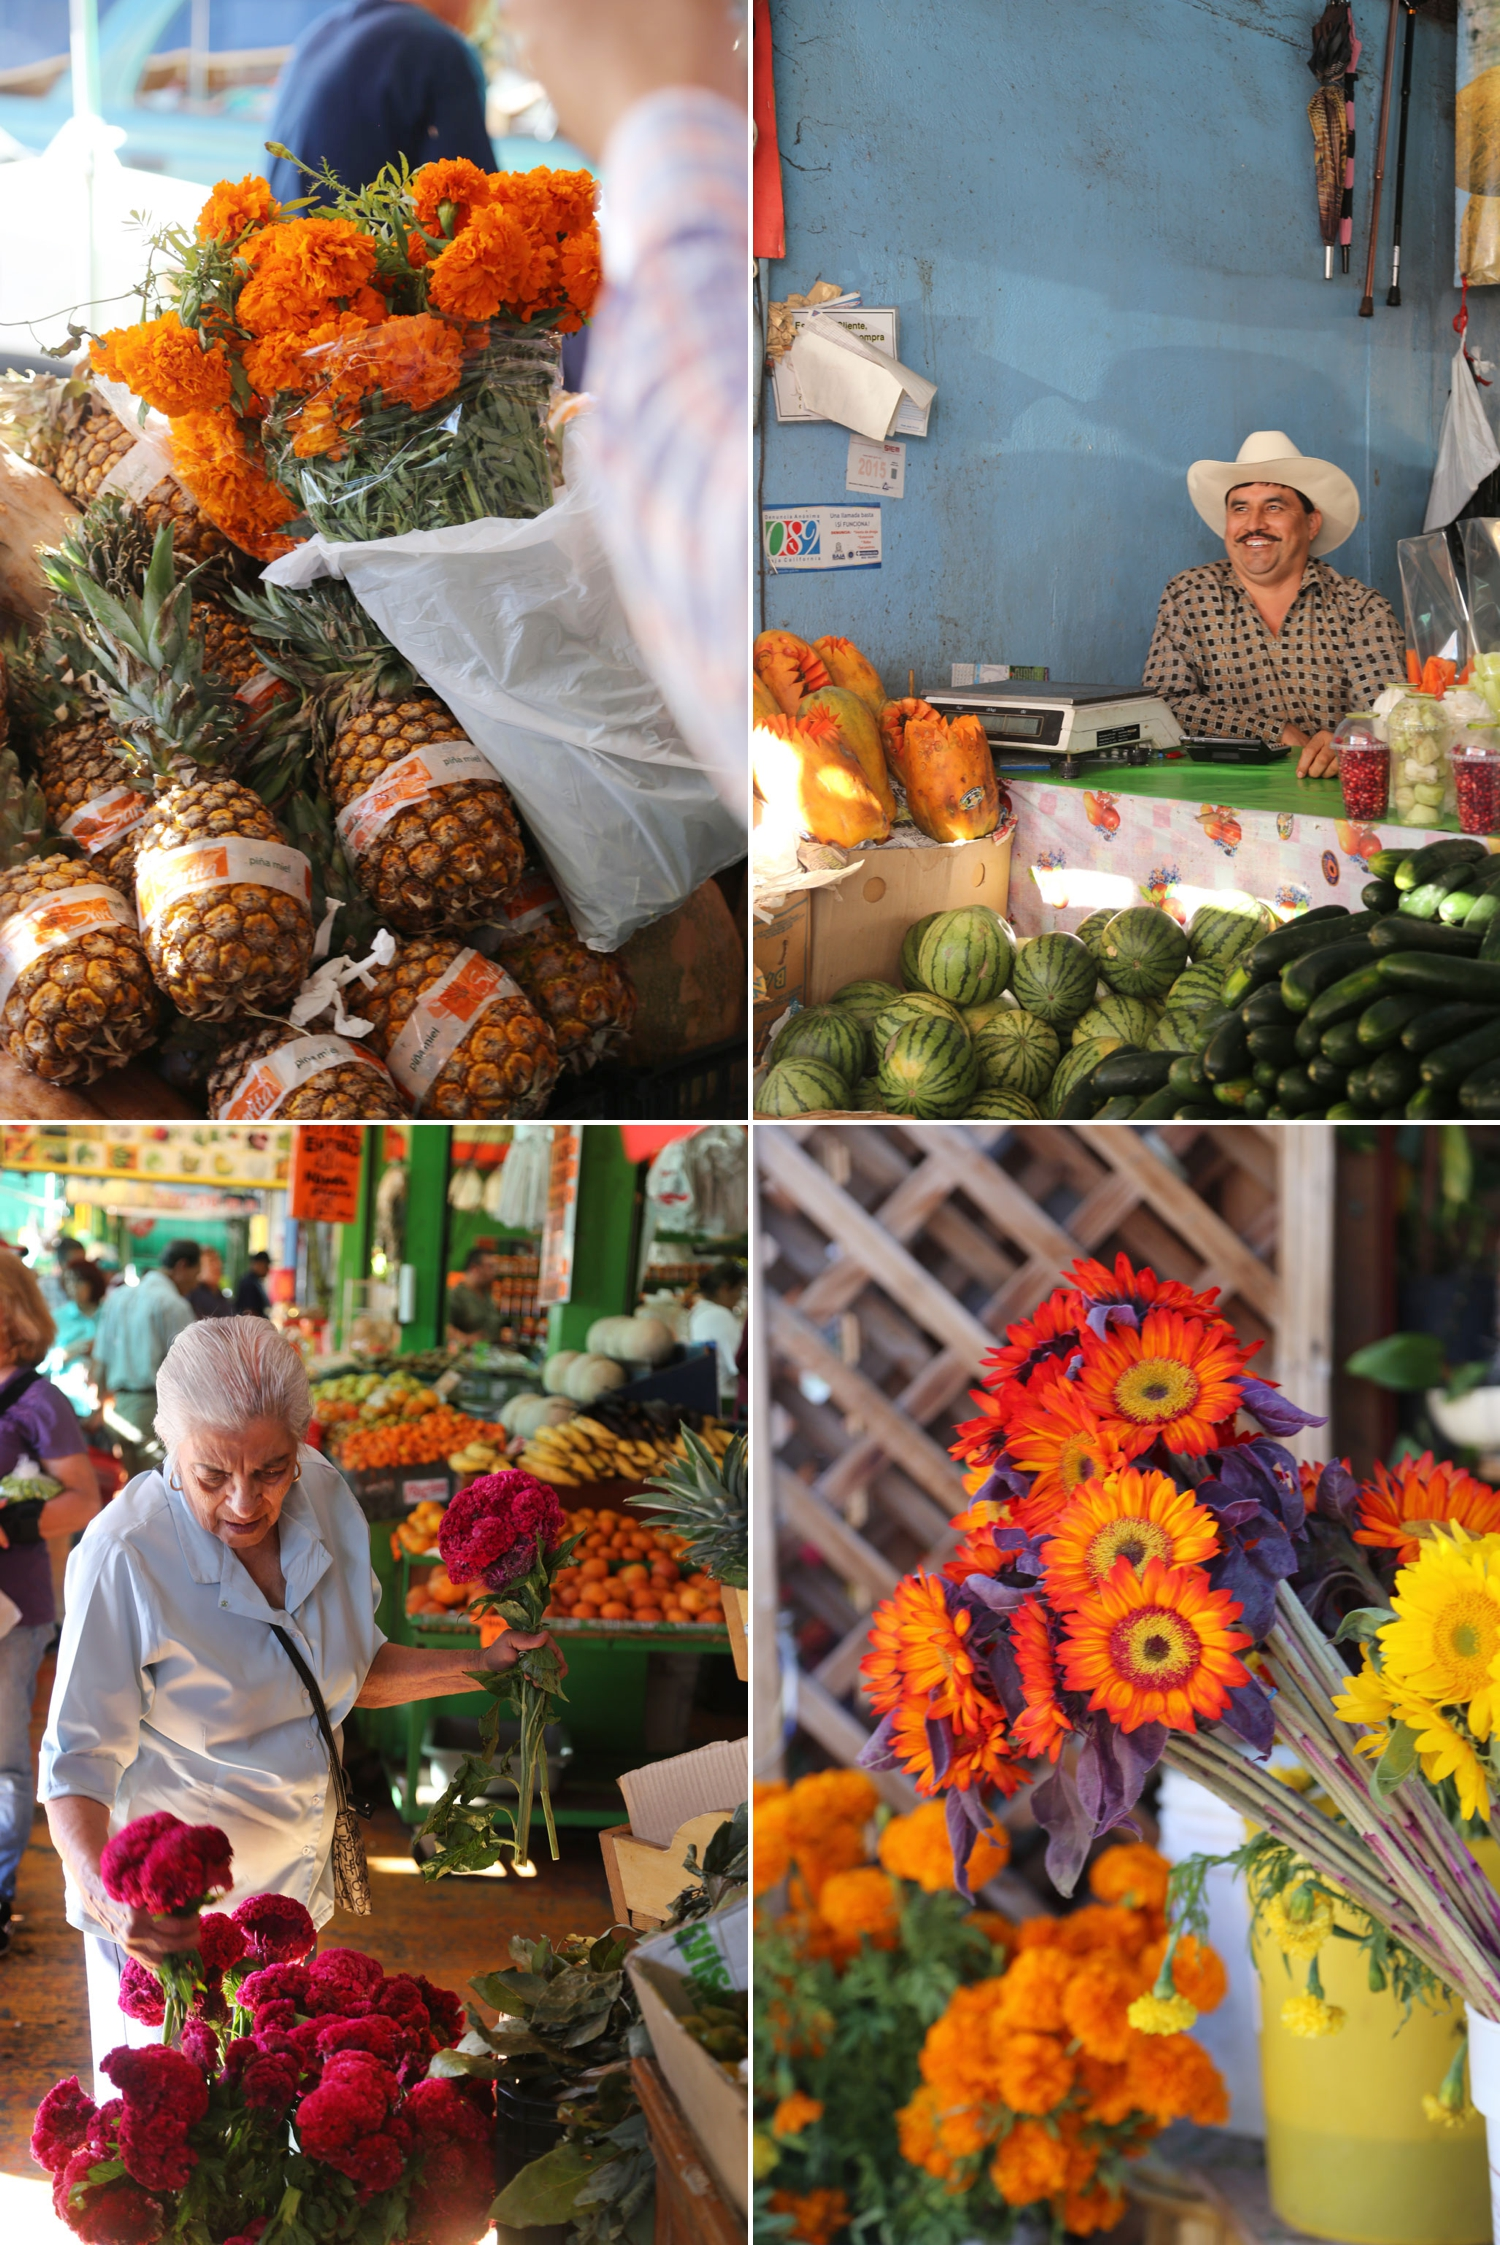 mercado hidalgo market in tijuana vendors flowers and produce